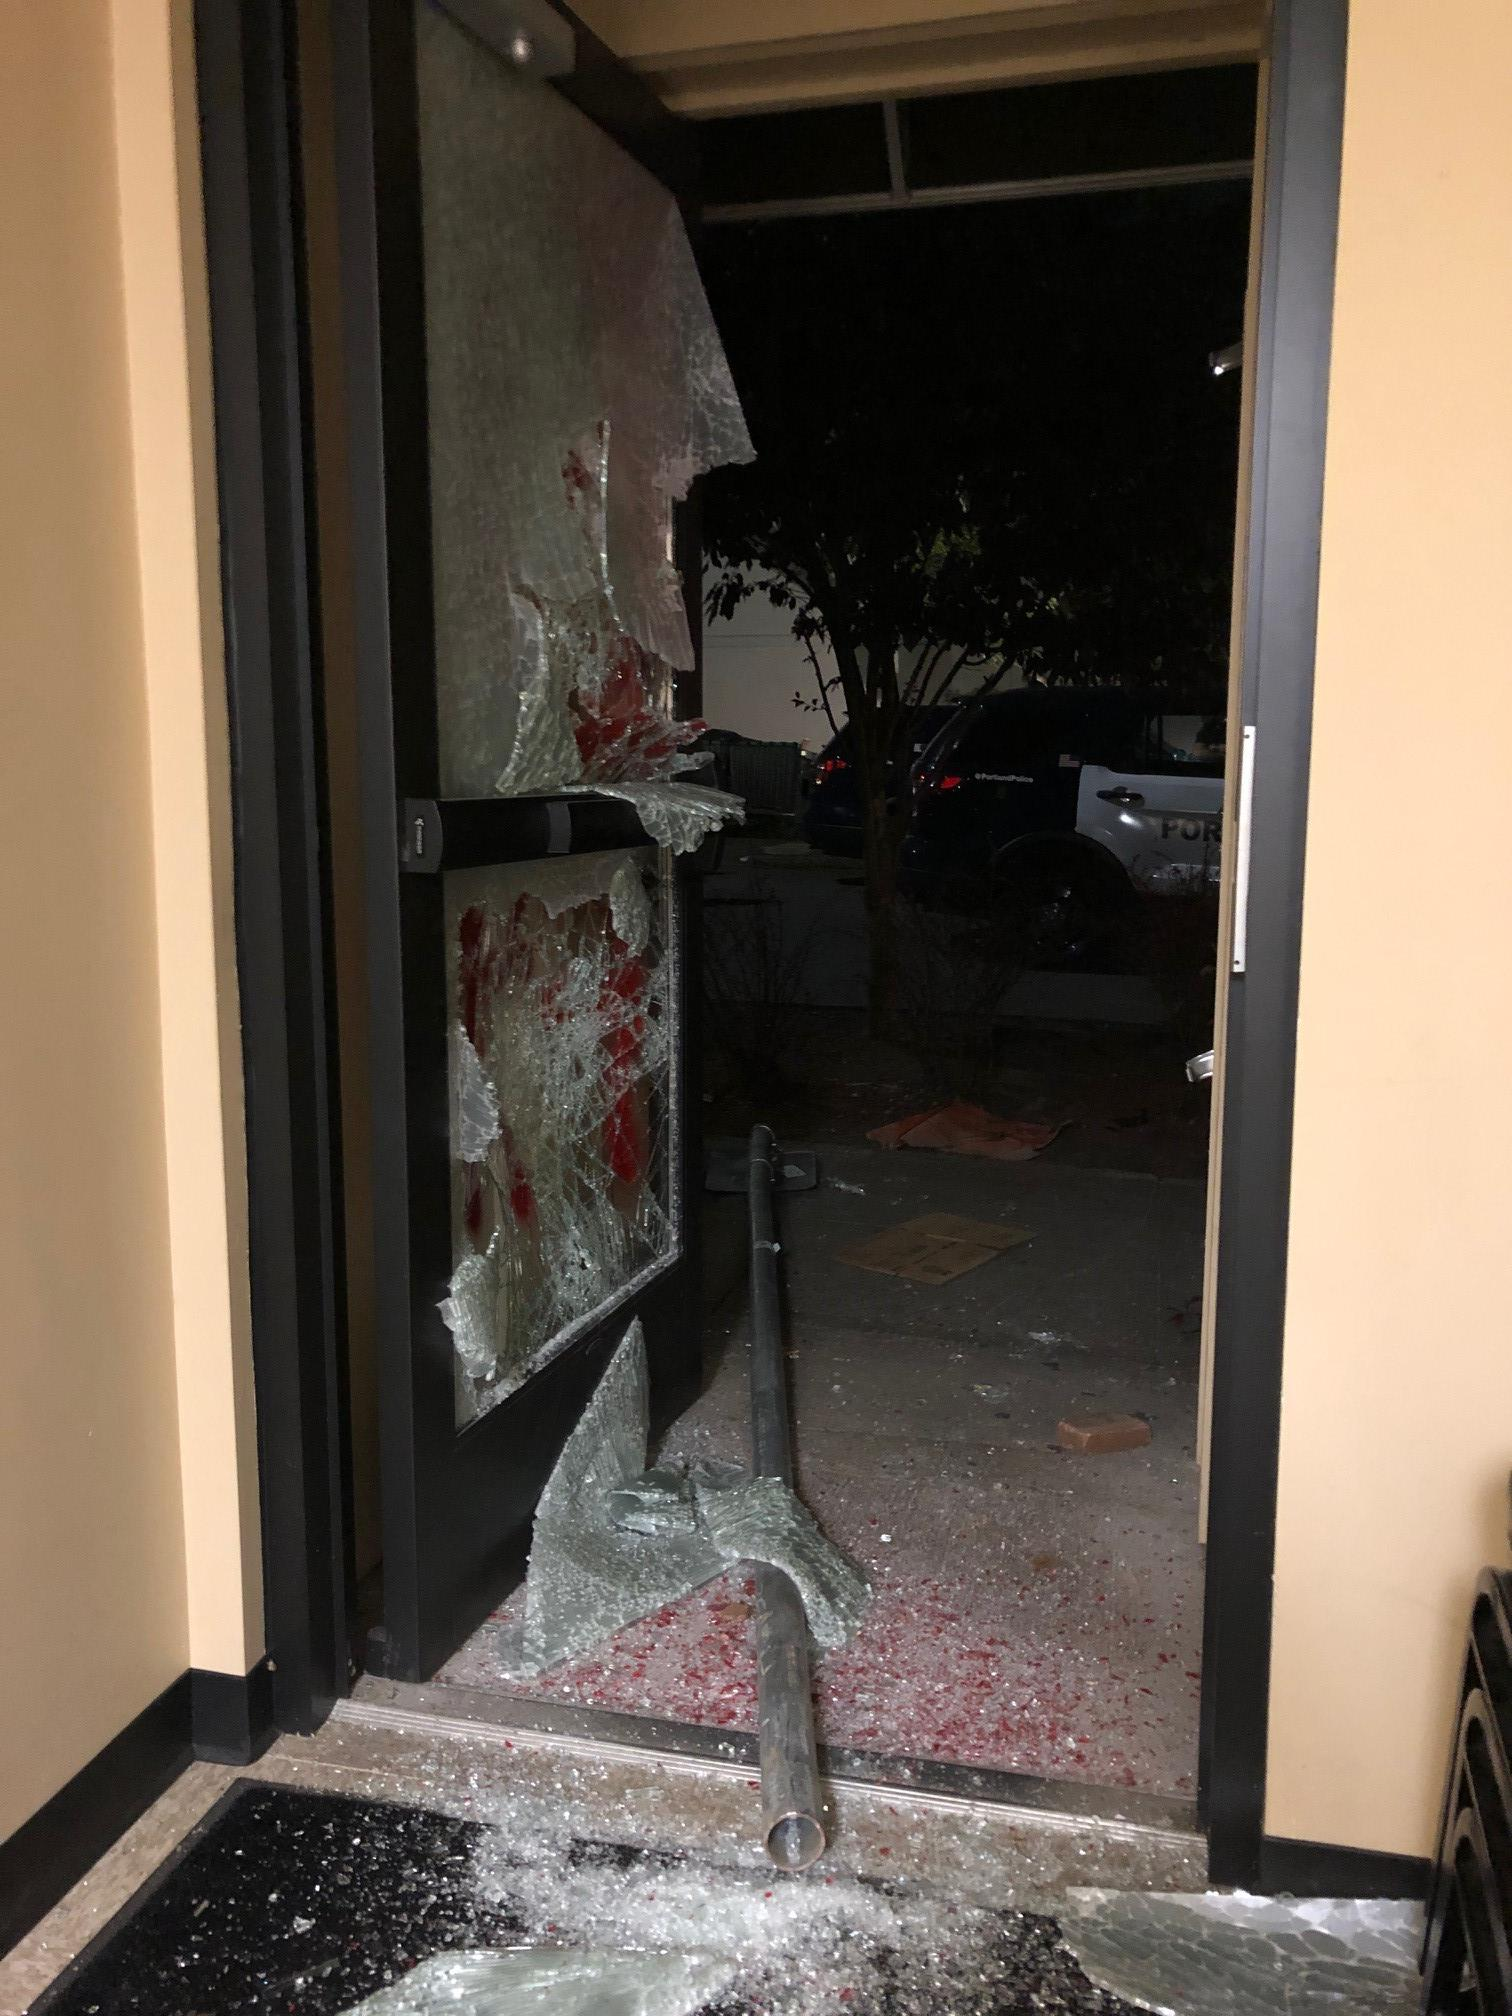 Photo shows damage to the Portland Police Association office building after a protest that started on August 4, 2020. Police said protesters broke into the building and set it on fire. Photo courtesy Portland Police Bureau